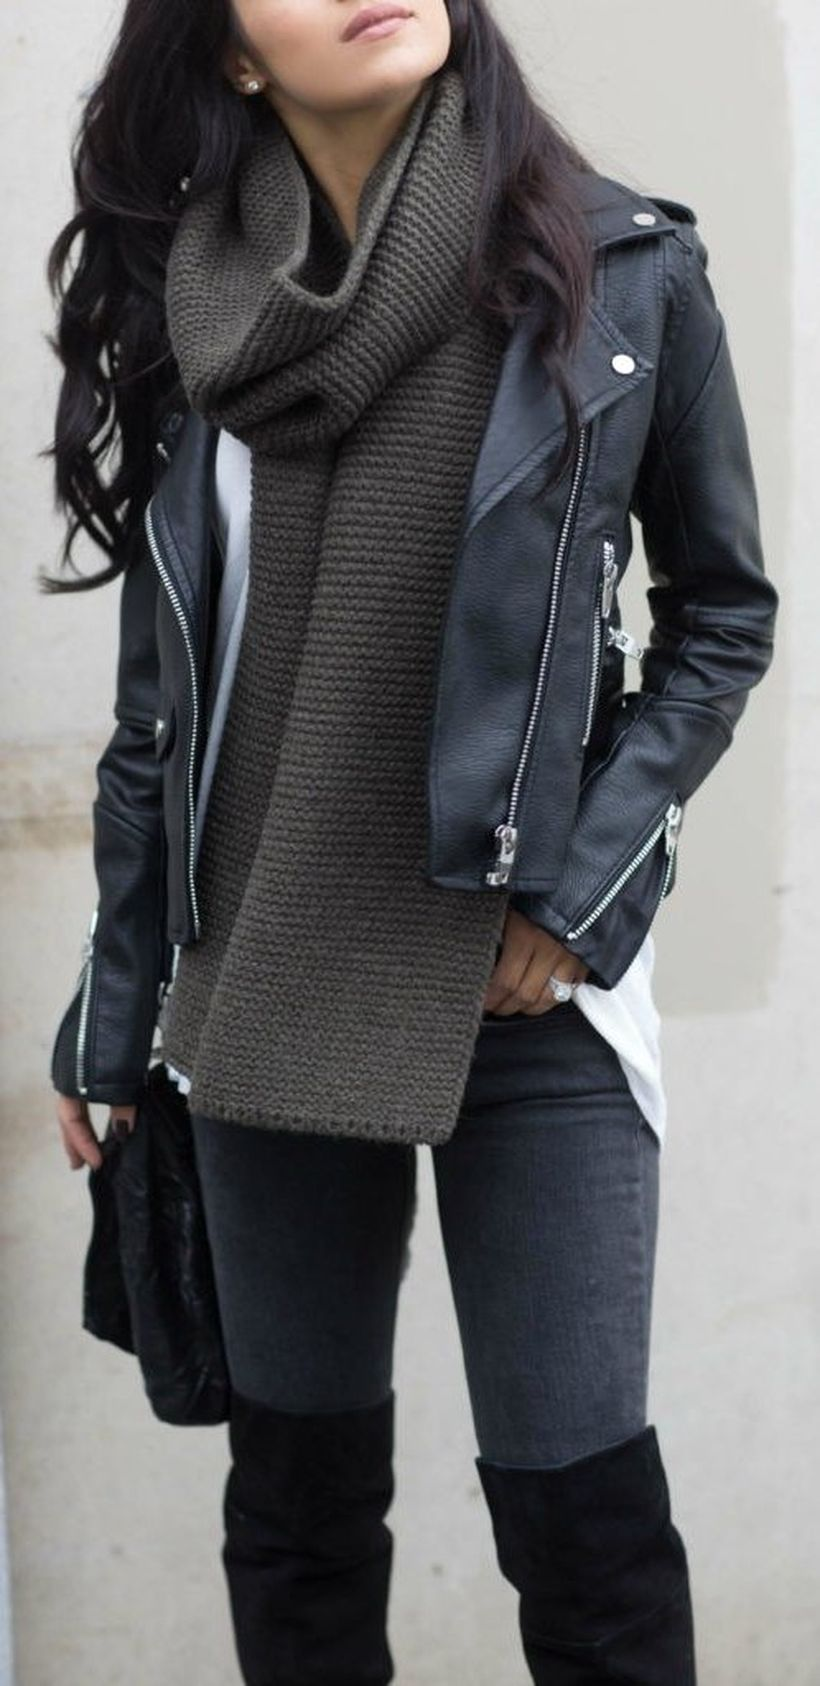 Fashionable outfit style for winter 2017 75